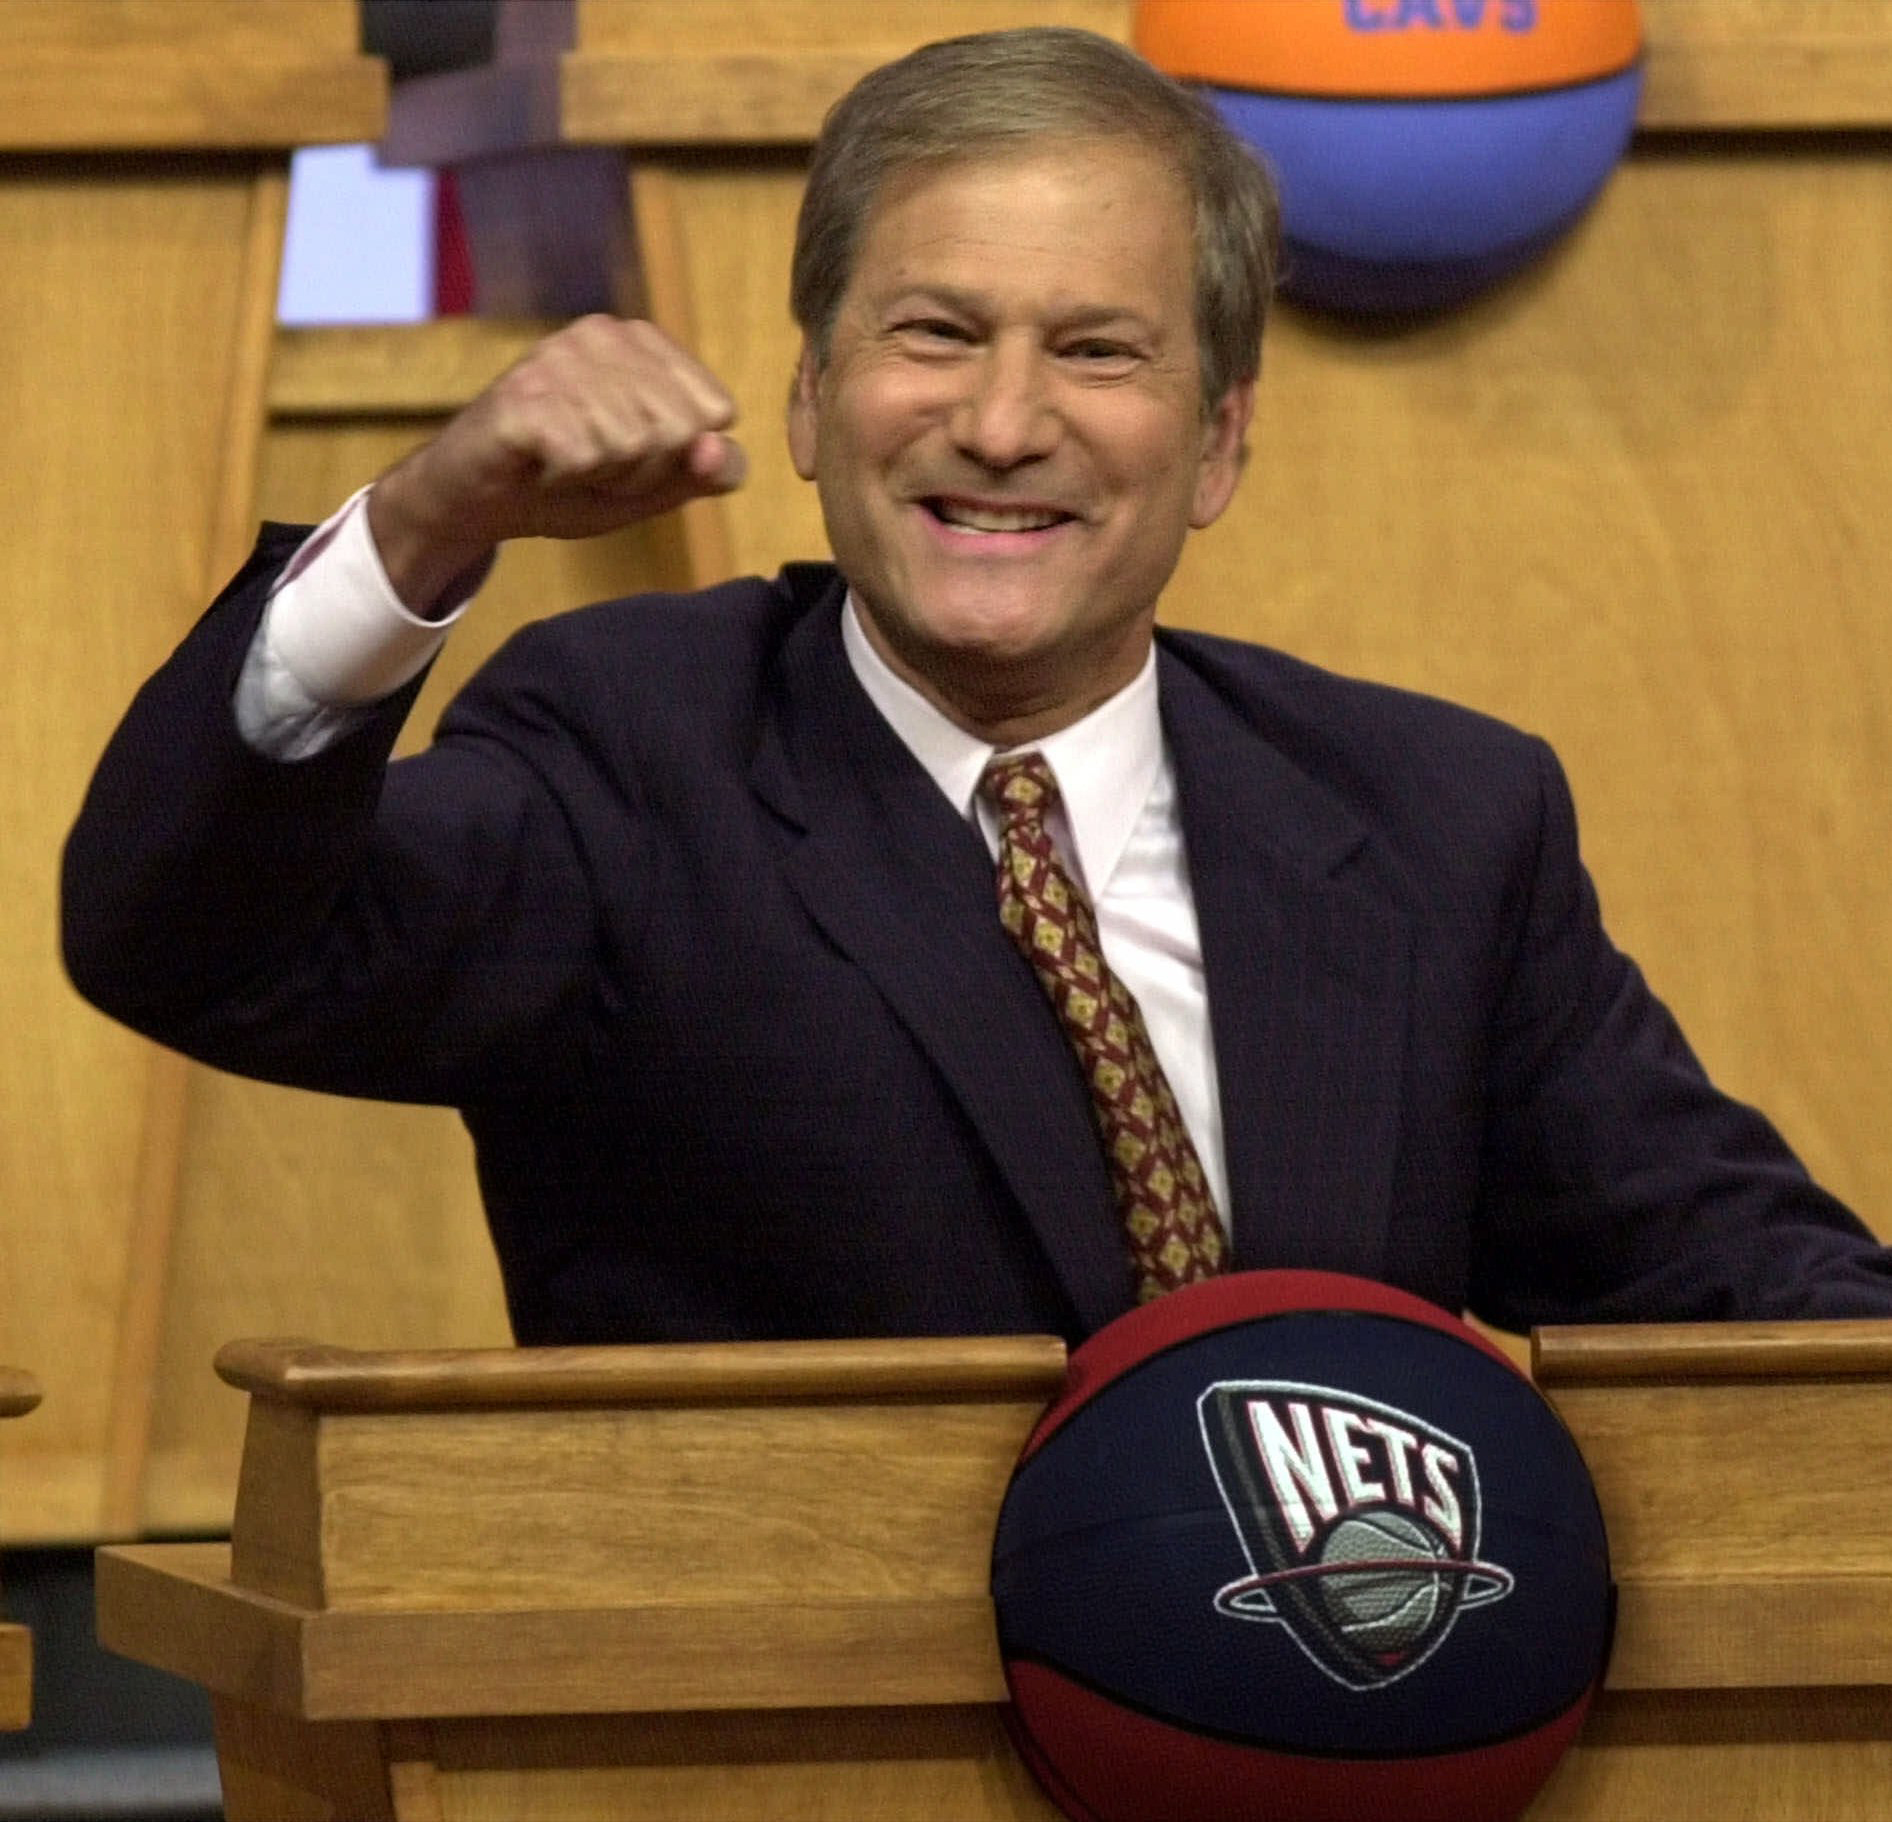 New Jersey Nets owner Lewis Katz reacts as the Nets received the first pick in the NBA draft Sunday, May, 21, 2000, at the NBA Draft Lottery in Secaucus, N.J. The Nets overcame a 4.4% probability of obtaining the first selection.